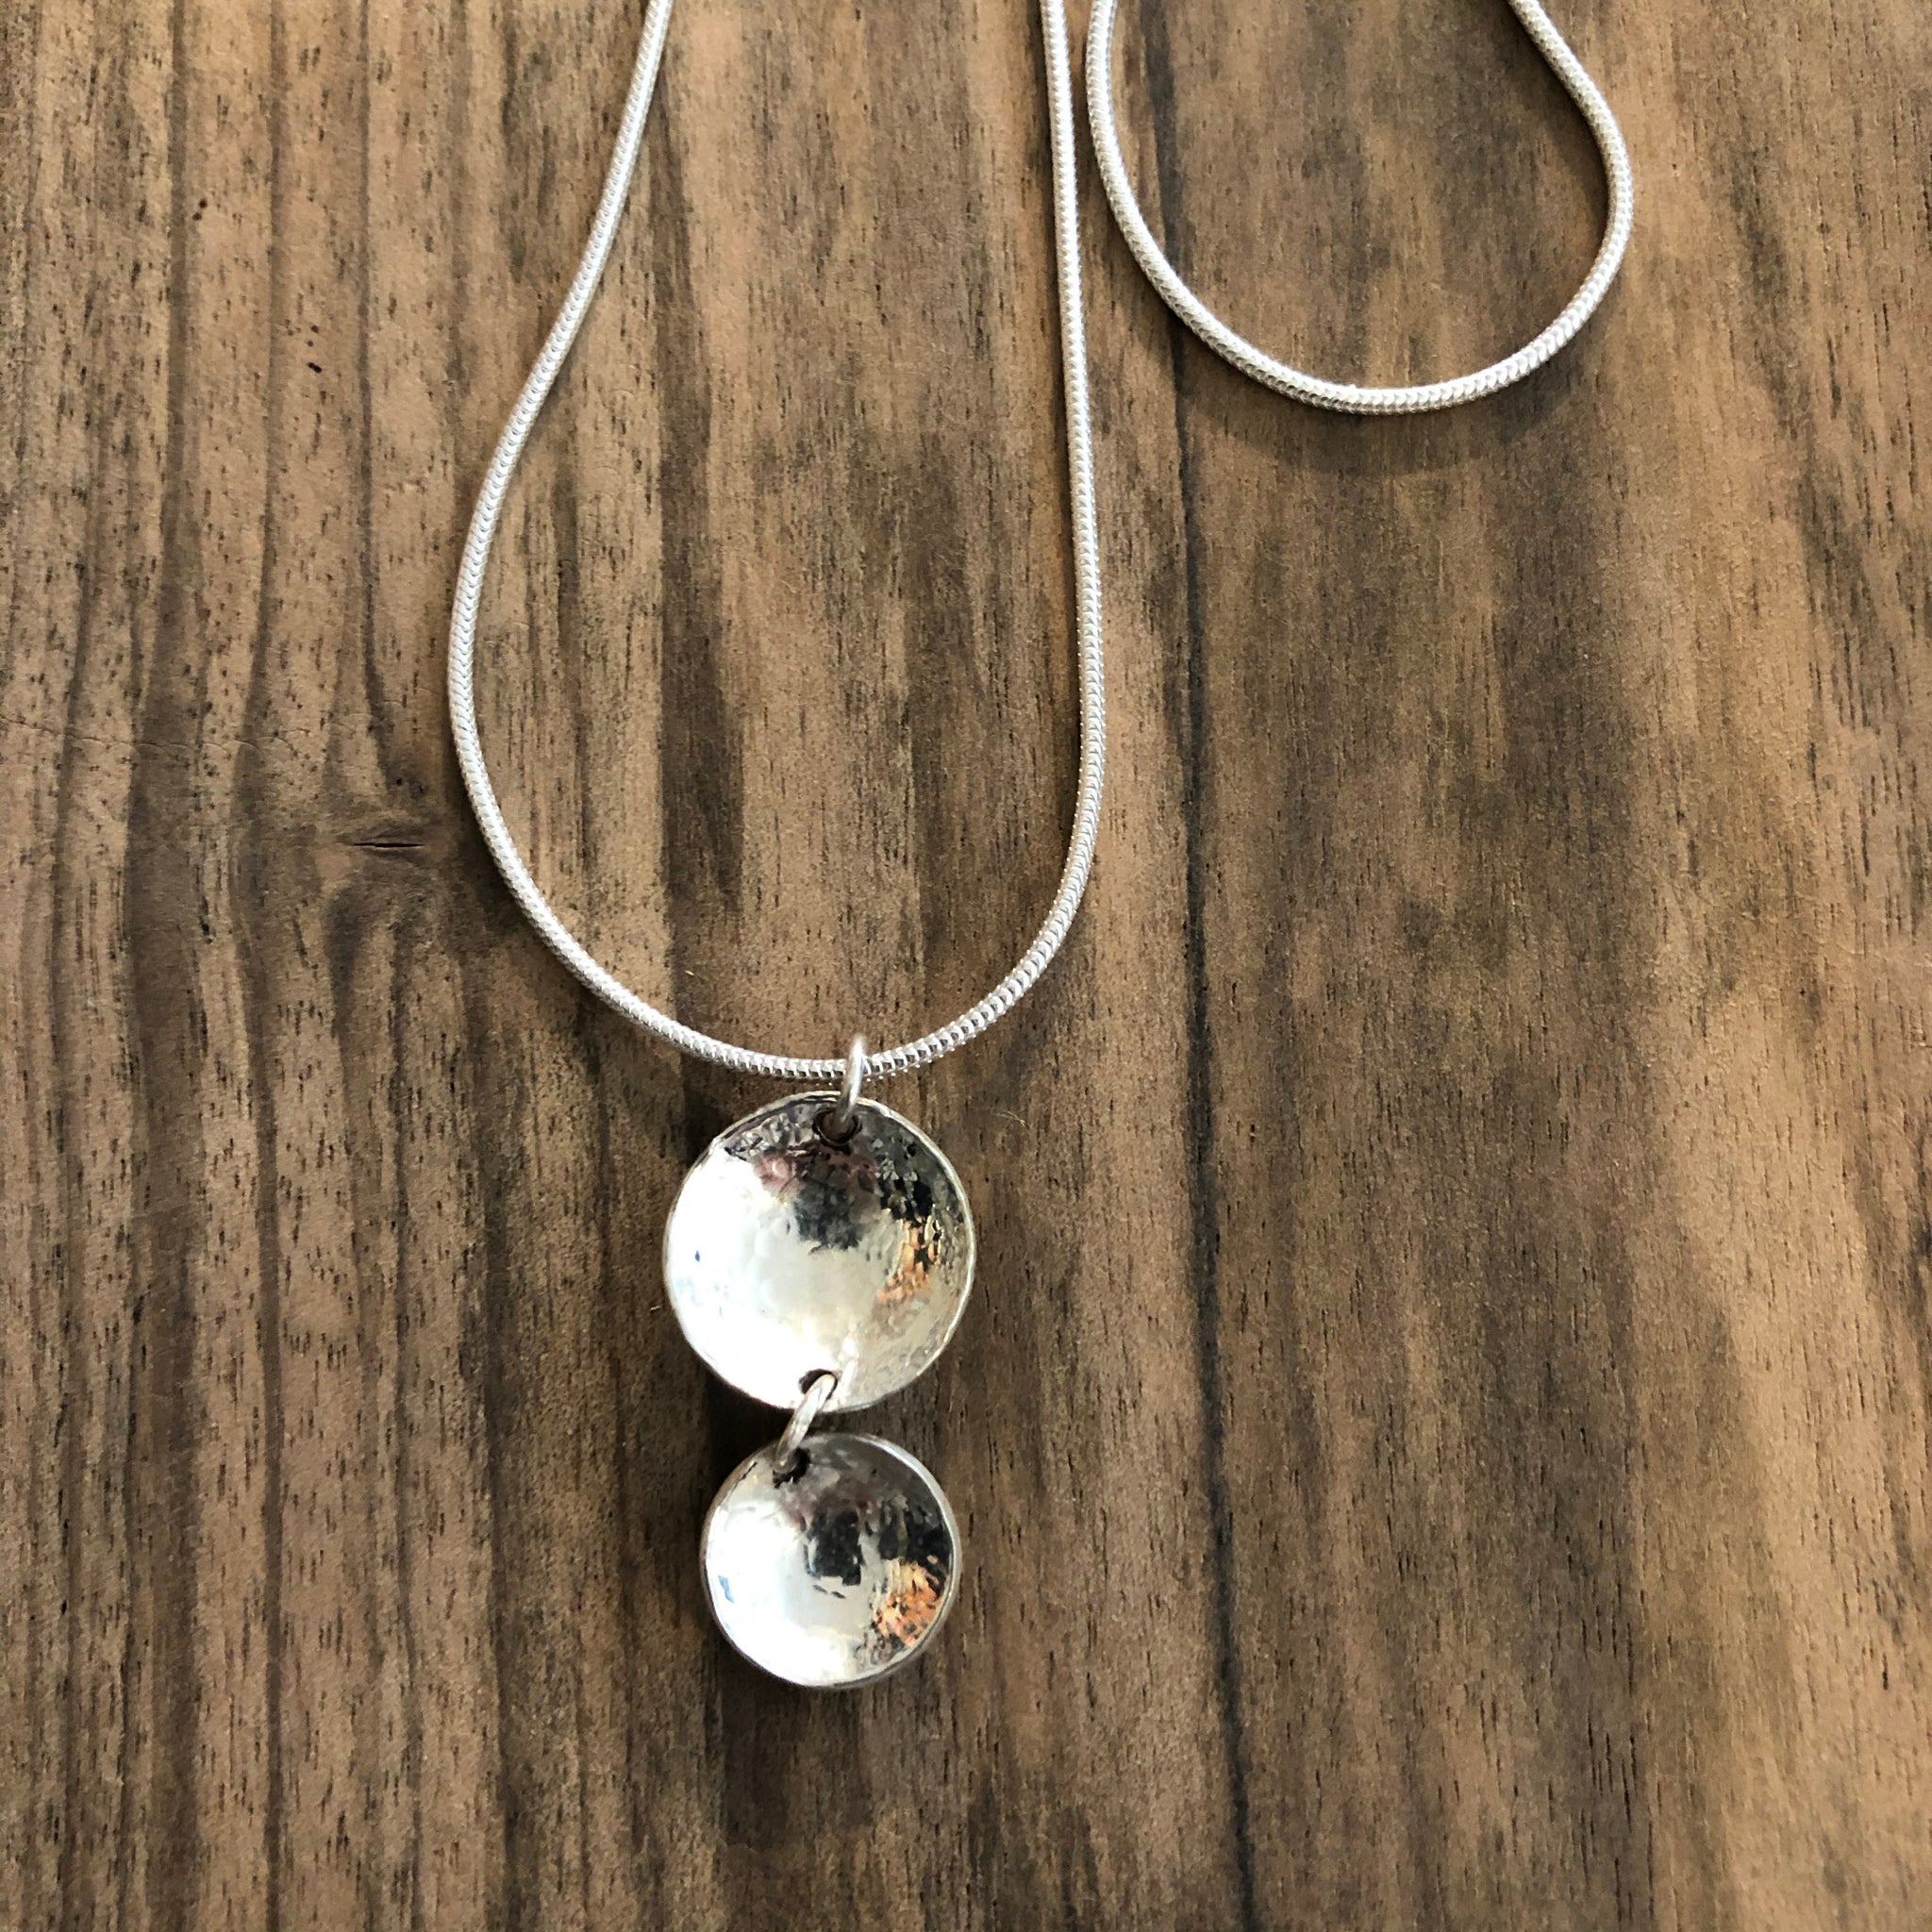 Two Bowl Necklace